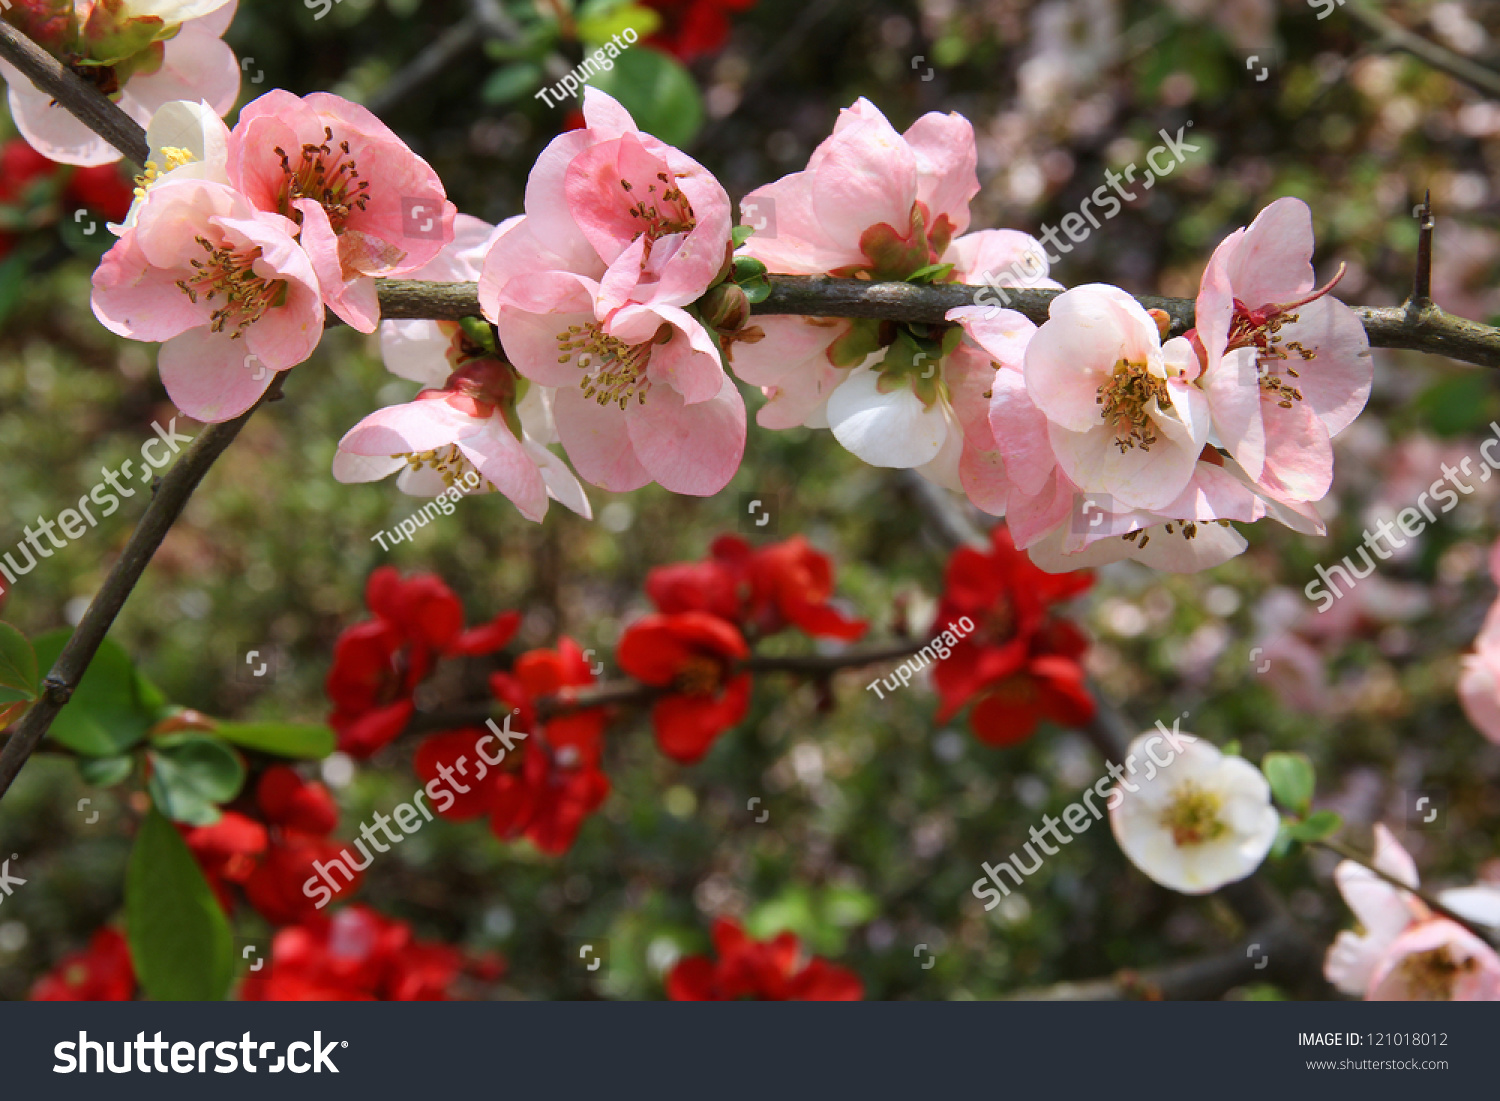 Flowering japanese quince chaenomeles cathayensis garden stock flowering japanese quince chaenomeles cathayensis in a garden in arashiyama kyoto japan biocorpaavc Image collections